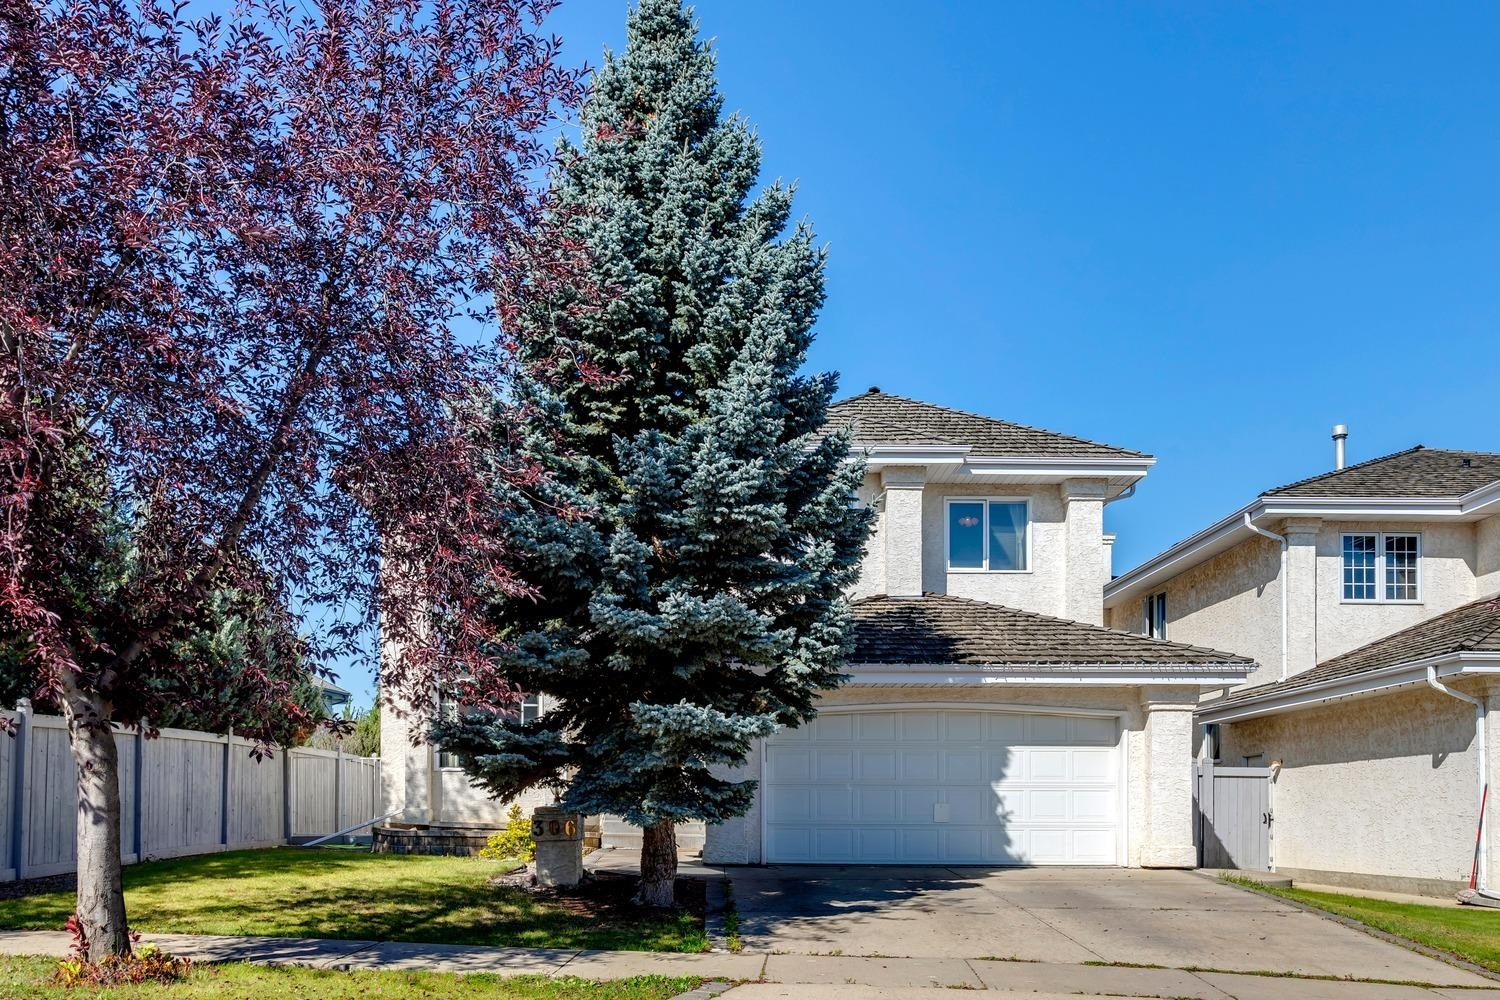 Beautiful family home in the sought after community of Whitemud Hills! Located in a quiet cul-de-sac and sitting upon a picturesque 8600+ sqft lot, this 2350+ sqft 2-storey has been well maintained and offers an attractive traditional layout. The main floor features a grand entrance, bright and open floorplan, vaulted ceilings in the living area that allows for an abundance of natural light. Spacious kitchen w/granite counters and s.s. appliances, formal dining area/flex space, family room w/gas fireplace, breakfast nook, and home office. Upstairs you will find 4 large bedrooms, including the master suite w/4-pc ensuite and walk-in closet, additional 4-pc bath, and laundry room. The FULLY FINISHED lower level offers a large rec area, den, 4-pc bath and plenty of storage. Outside you will enjoy the gorgeous yard w/mature landscaping, above ground pool, hot tub, and gazebo. Located minutes to great schools, parks, Terwillegar Rec Centre, and all other amenities. Great home for a family!